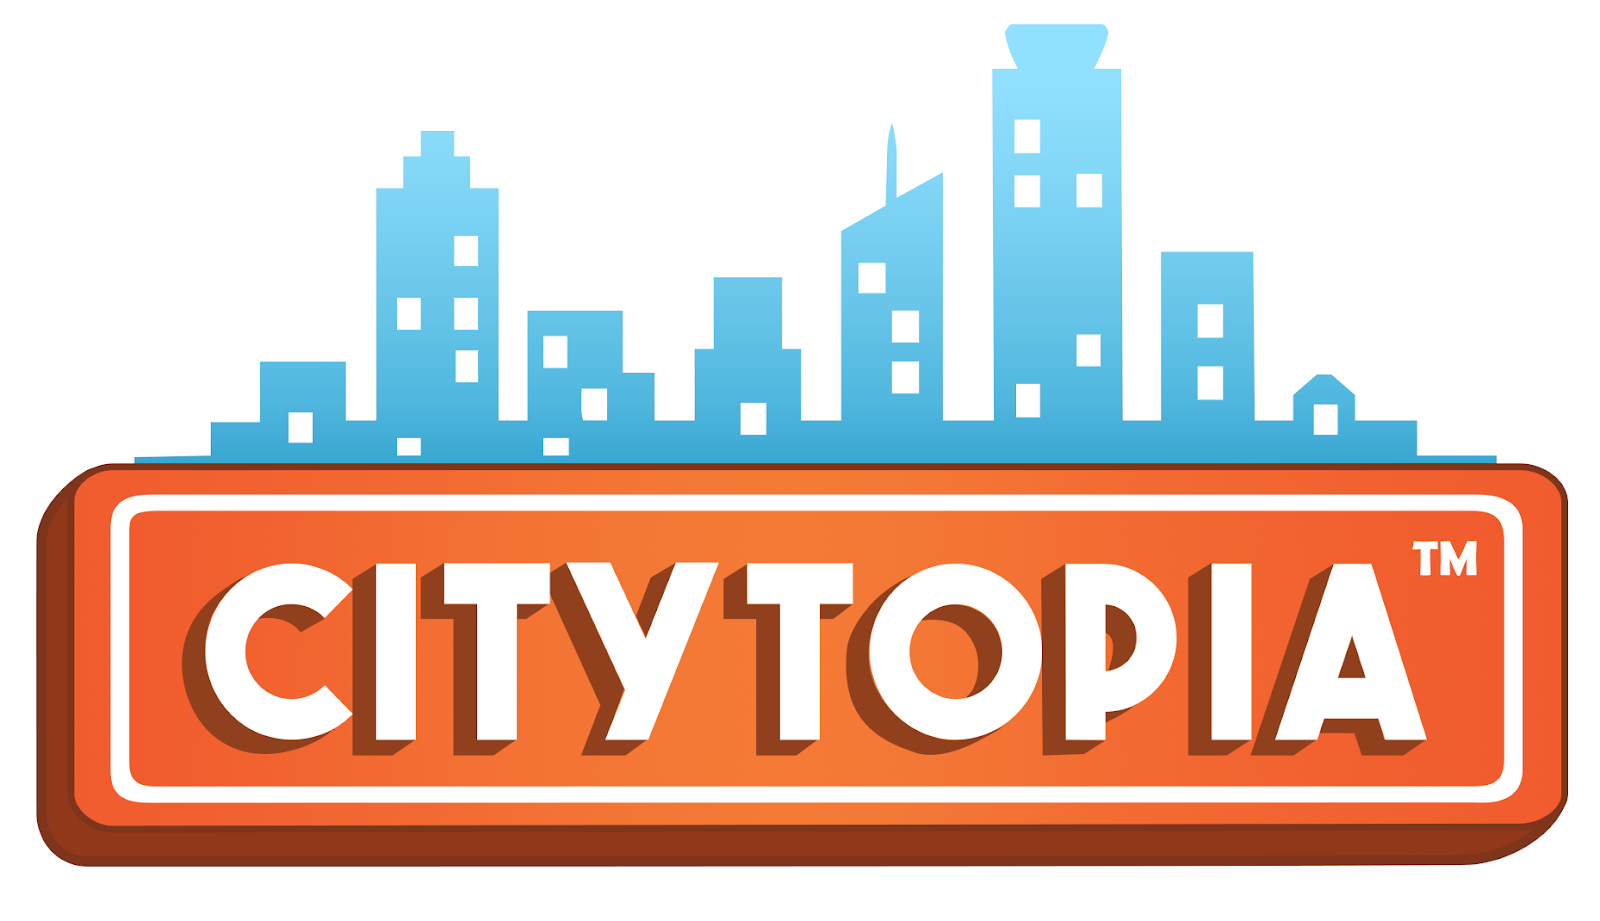 Atari® Announces Citytopia™, an All-New City-Building Simulation Game Available Now on iPhone, iPad, and iPod touch